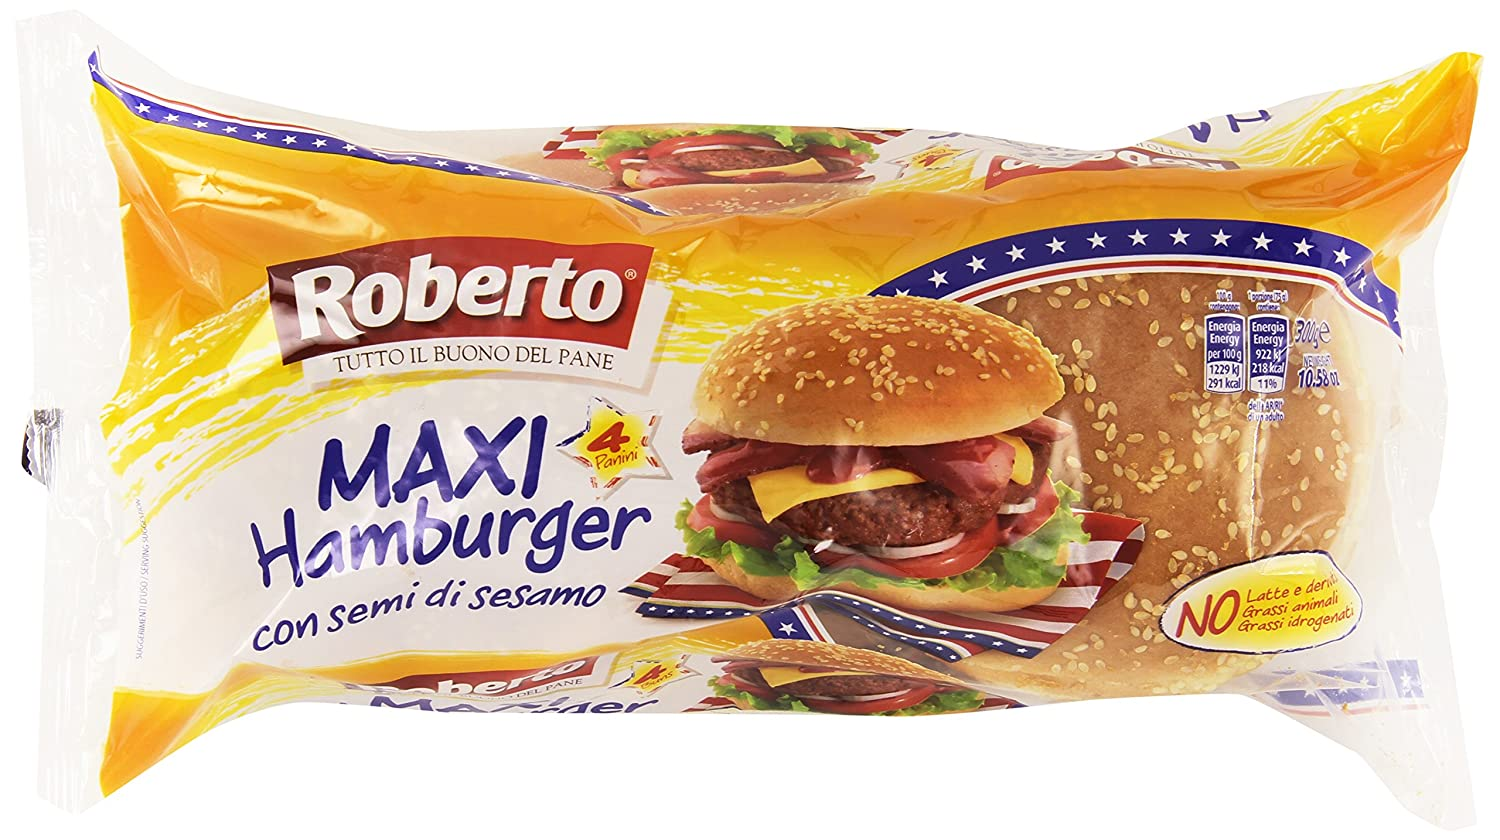 Favoloso Roberto Pane Maxi Hamburger Sesamo - 300 gr: Amazon.it: Amazon Pantry FL55